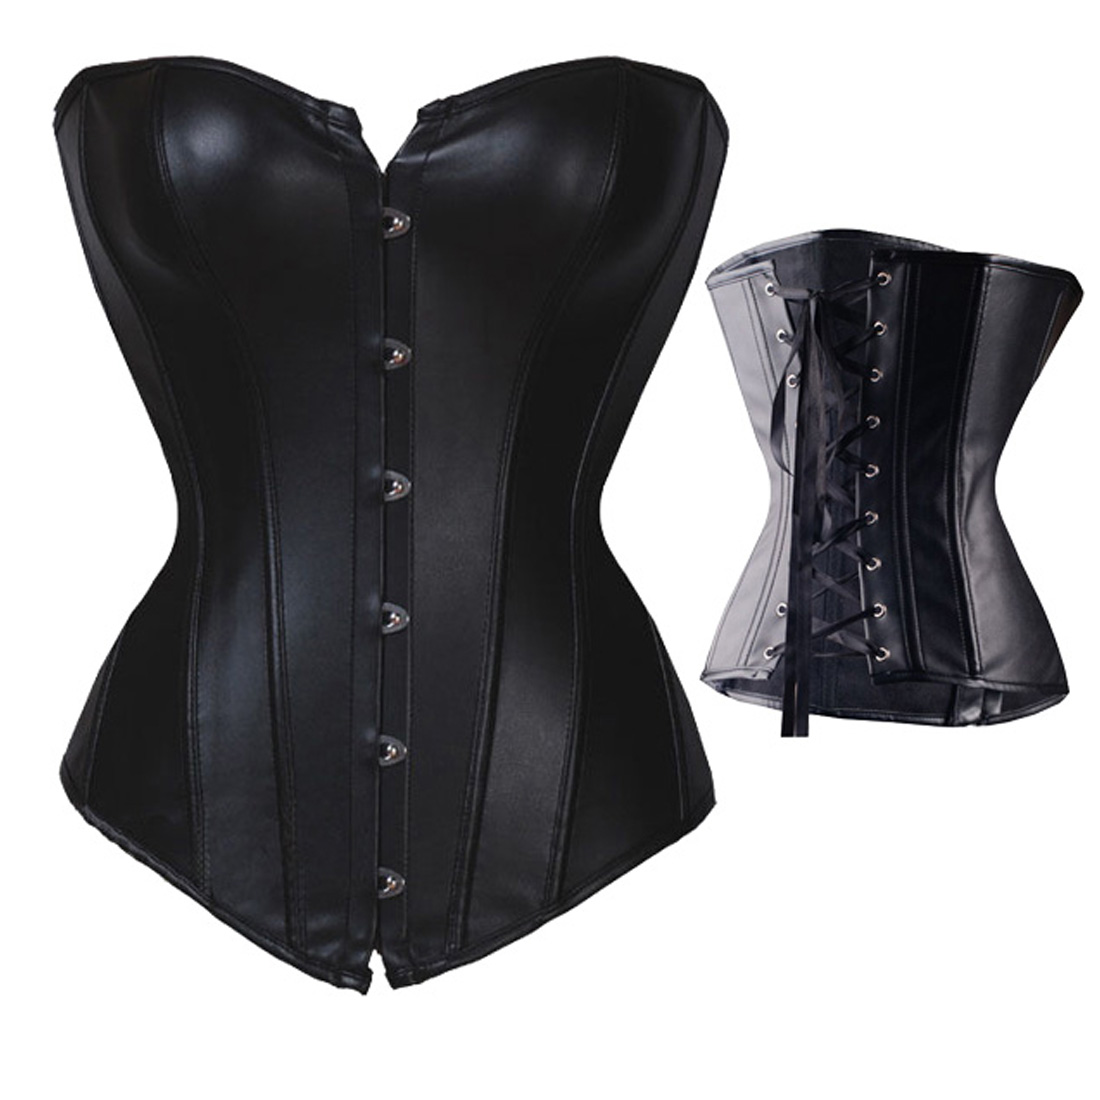 39a996e0a Get Quotations · New Fashion Size S-6XL Womens Faux Leather Body Shaper  Boned Overbust Sexy Corset Bustier